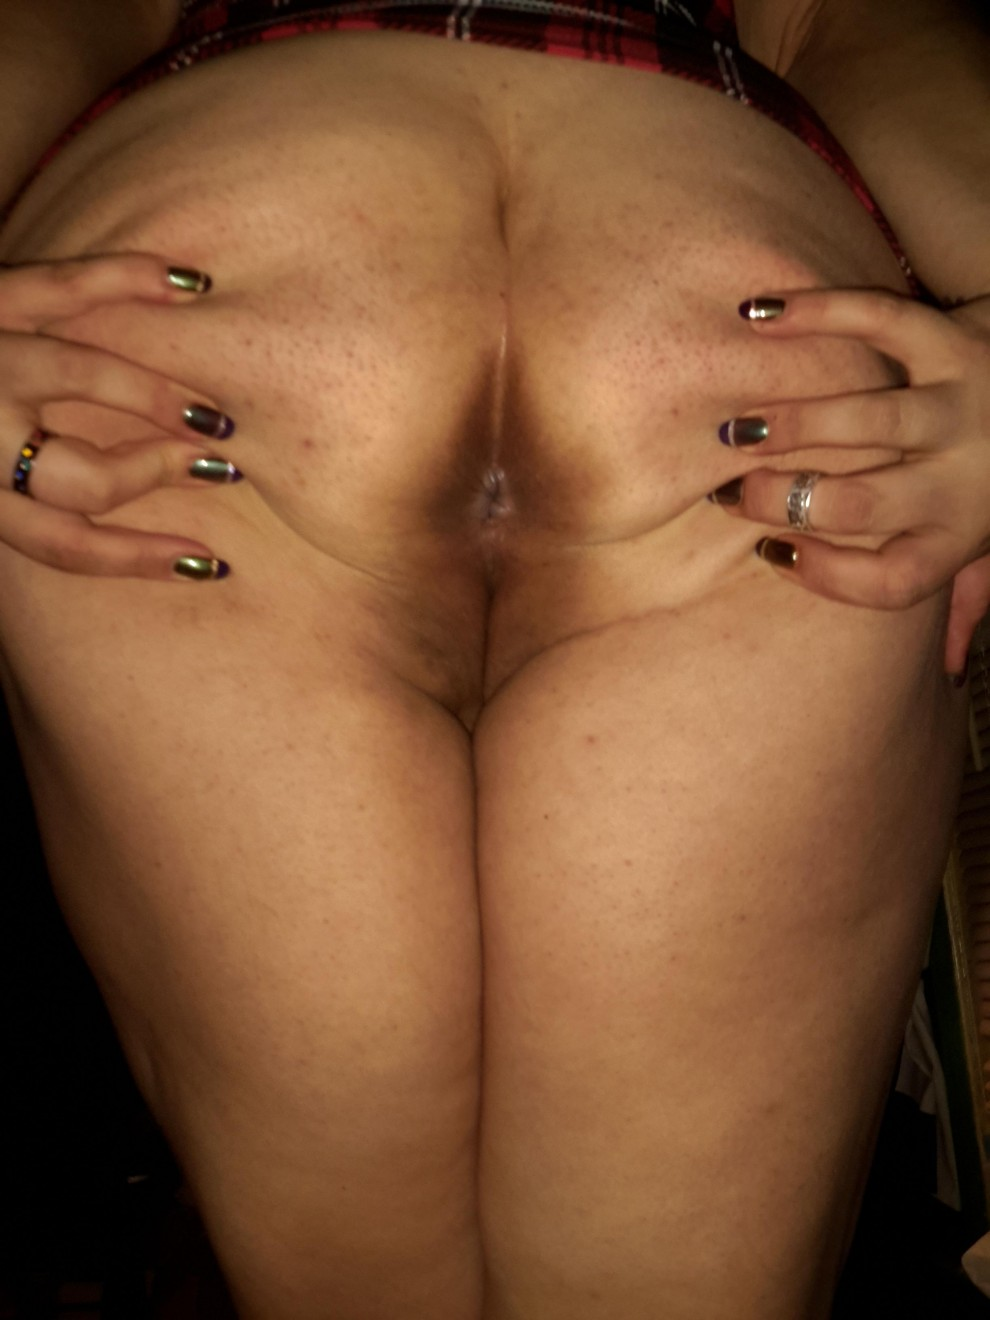 So who's gonna [F]uck me in the asshole?